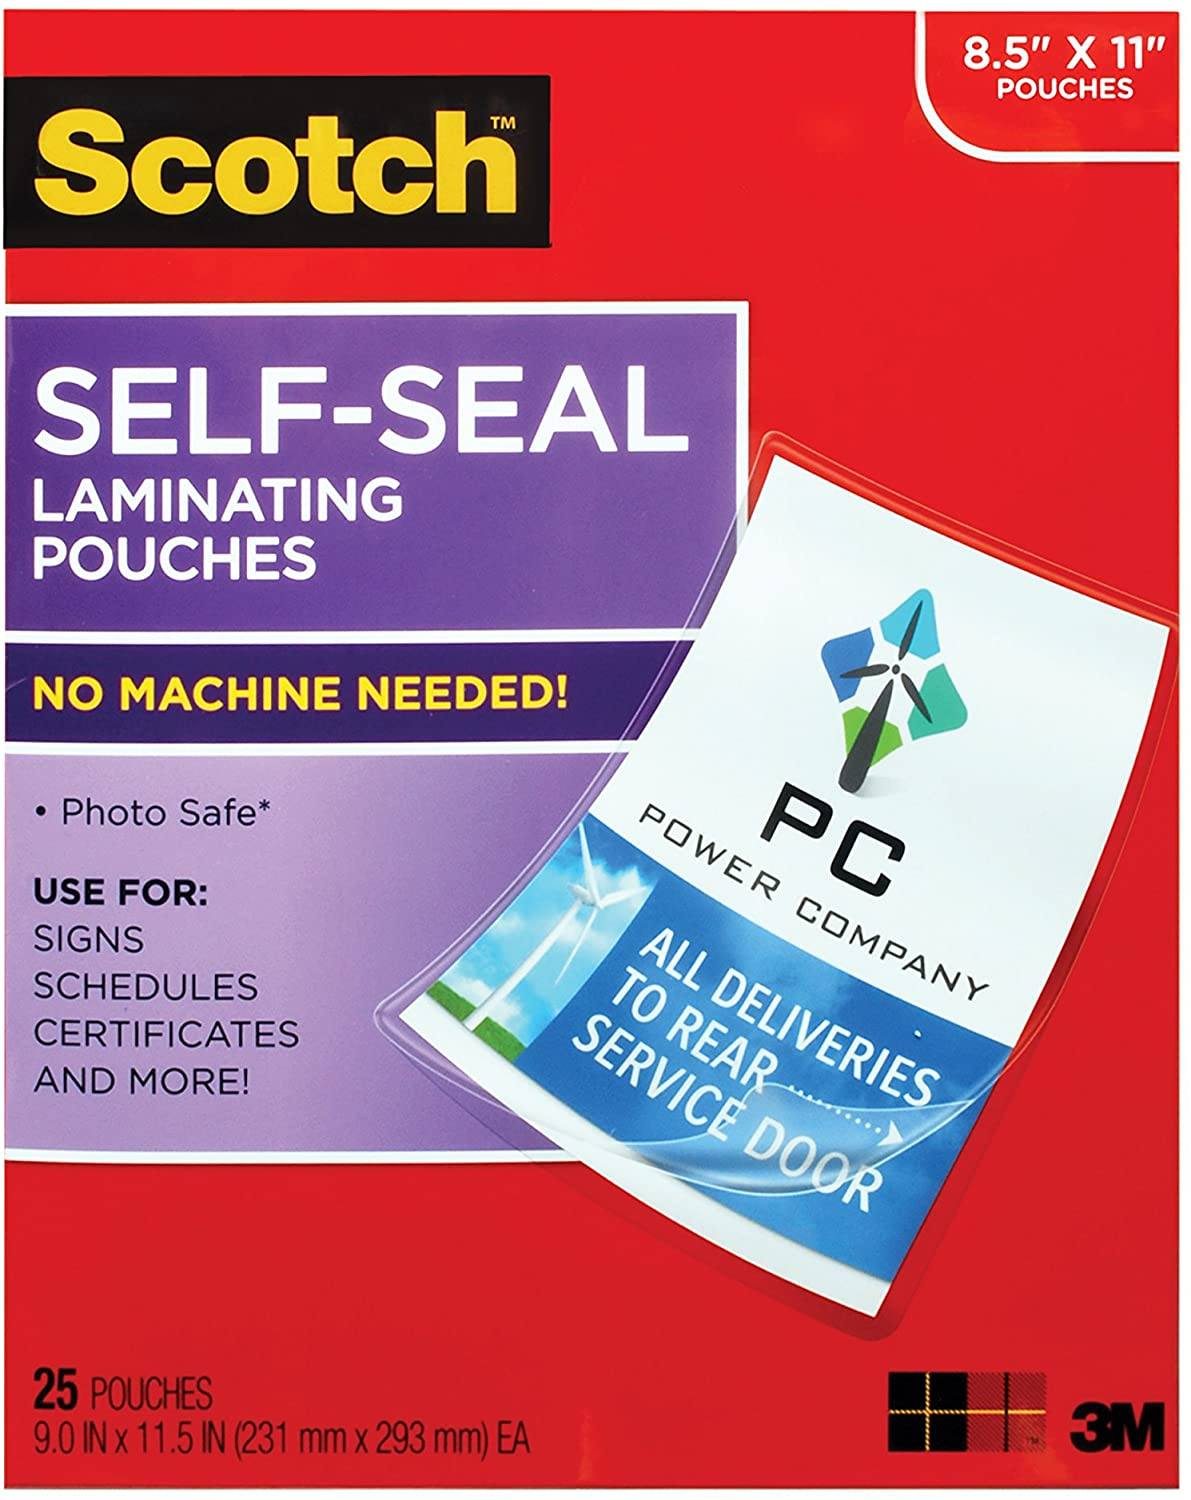 LS854-25G-WM Gloss Finish Letter Size 9.0 in x 11.5 in - 1 Pack LS854WC 25 Sheets Scotch Self-Sealing Laminating Pouches